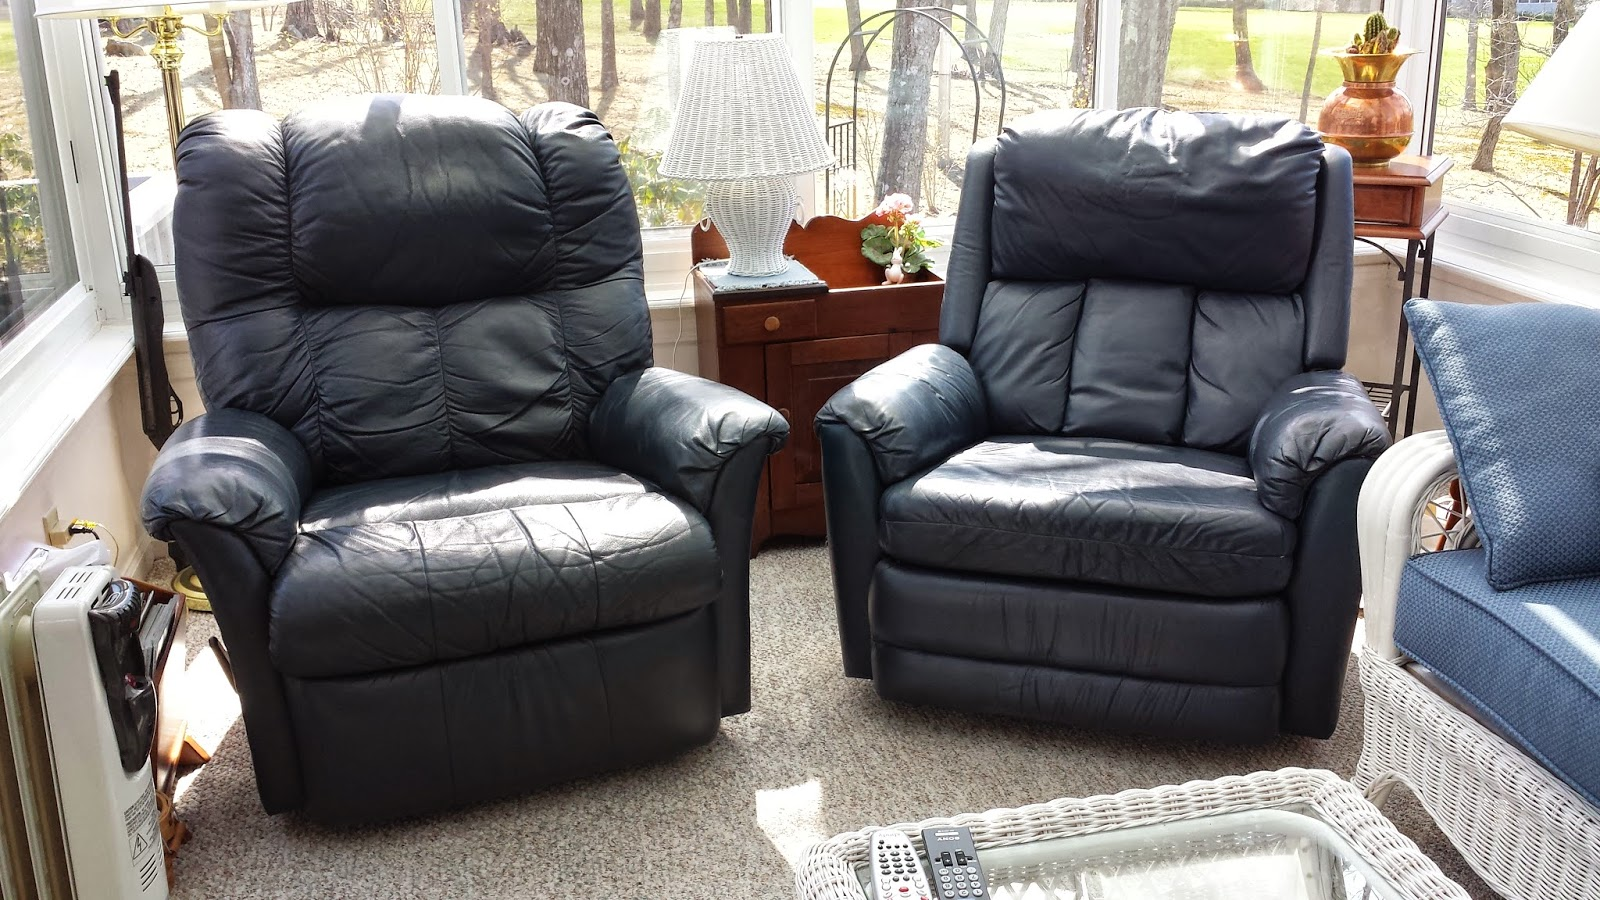 His and Hers Navy Leather Recliners : his and hers recliners - islam-shia.org